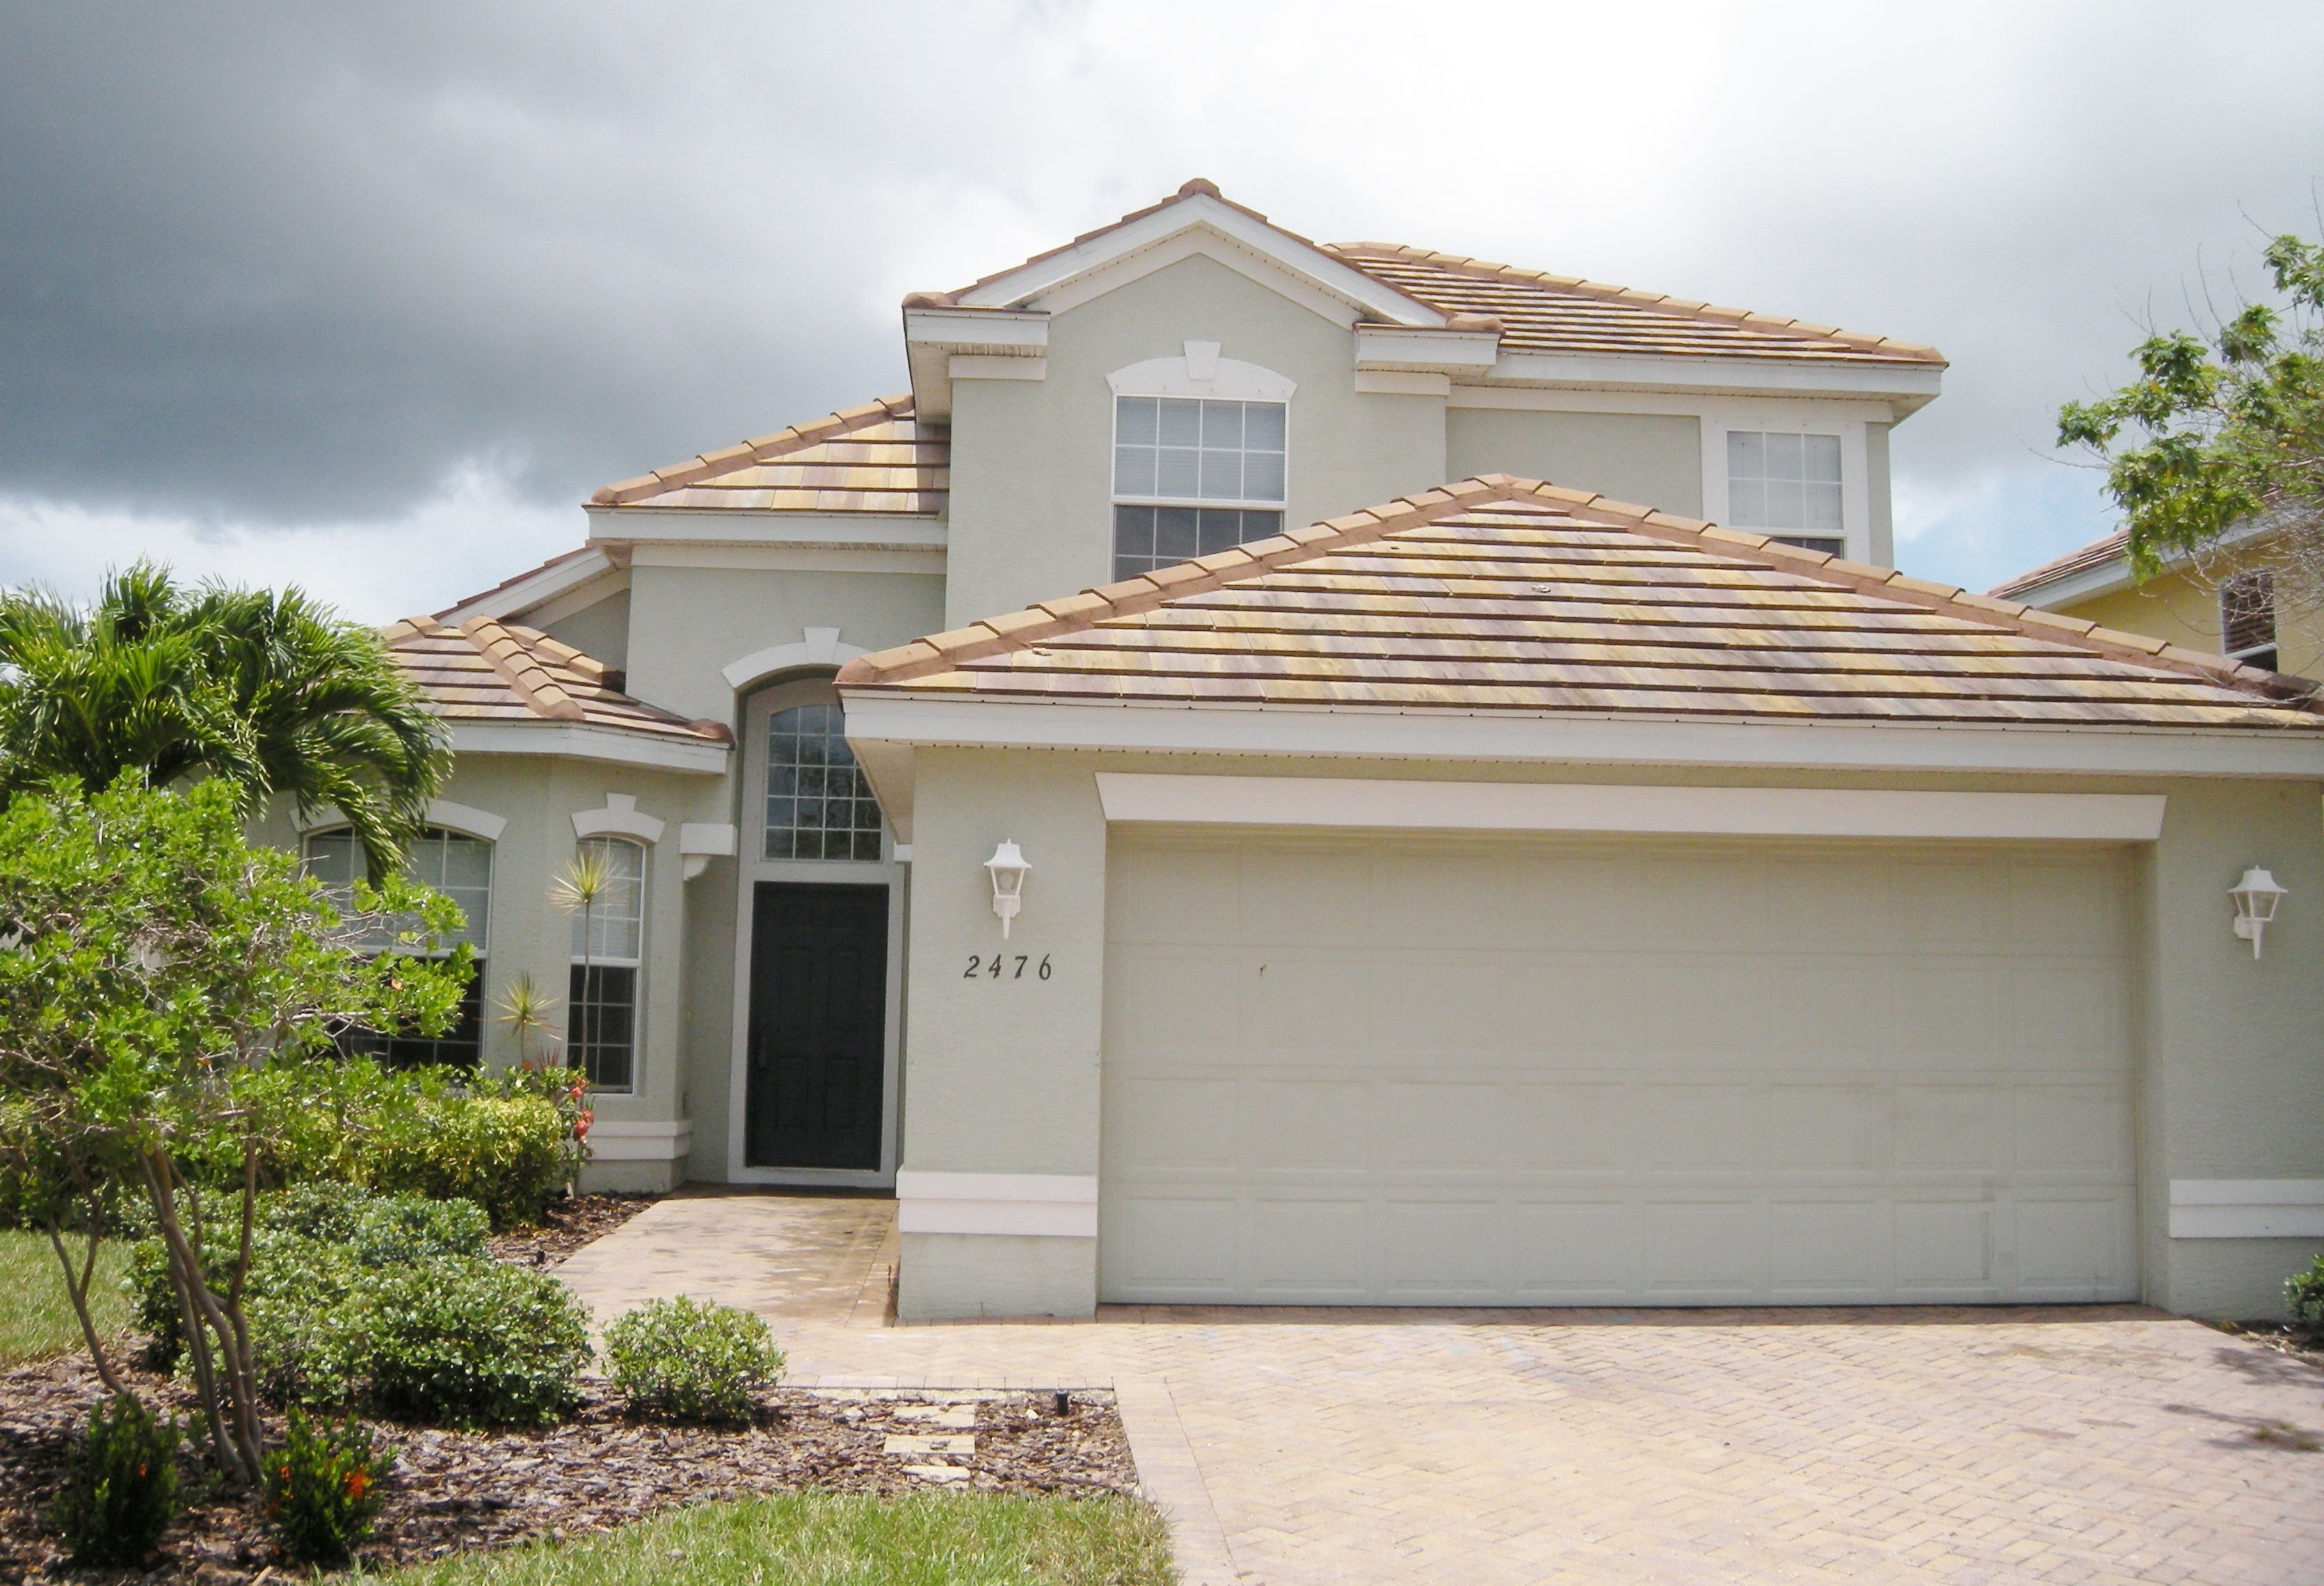 Best Sandoval Cape Coral Fl House For Sale Cape Coral Ft With Pictures